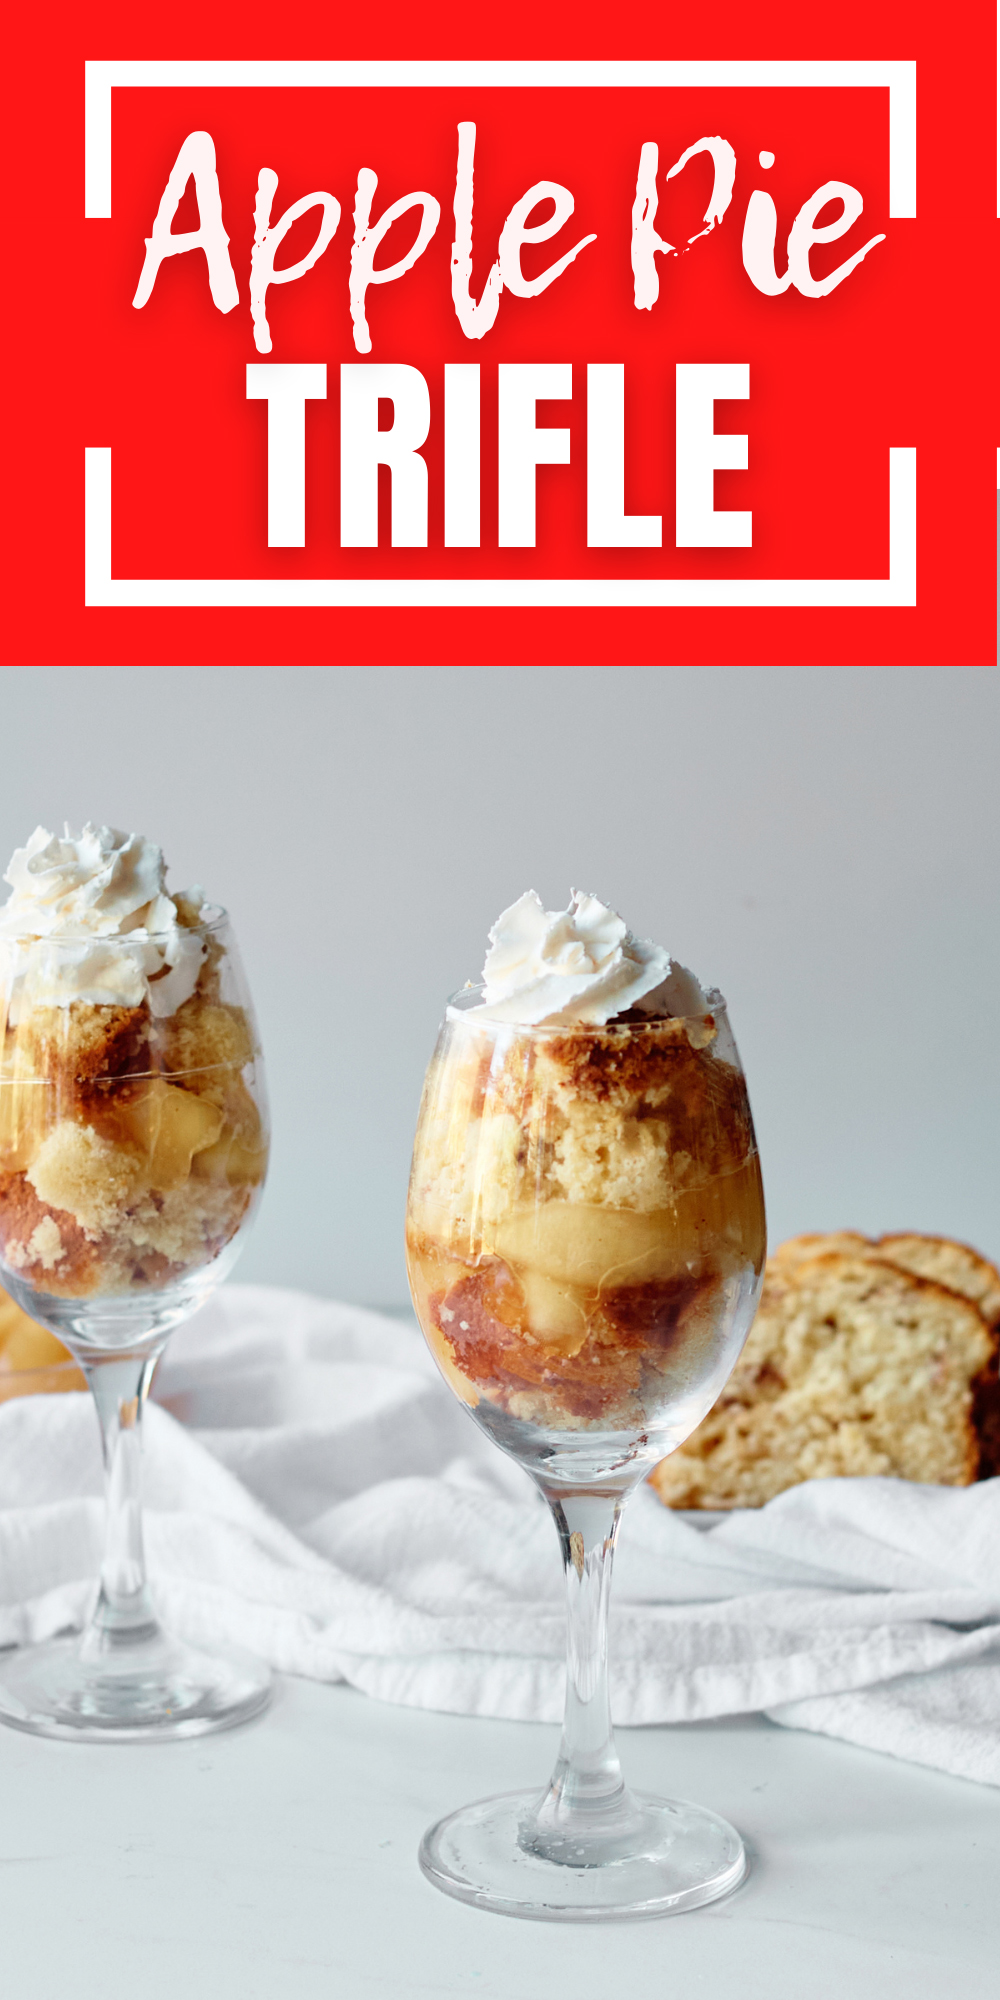 Apple Pie Trifle